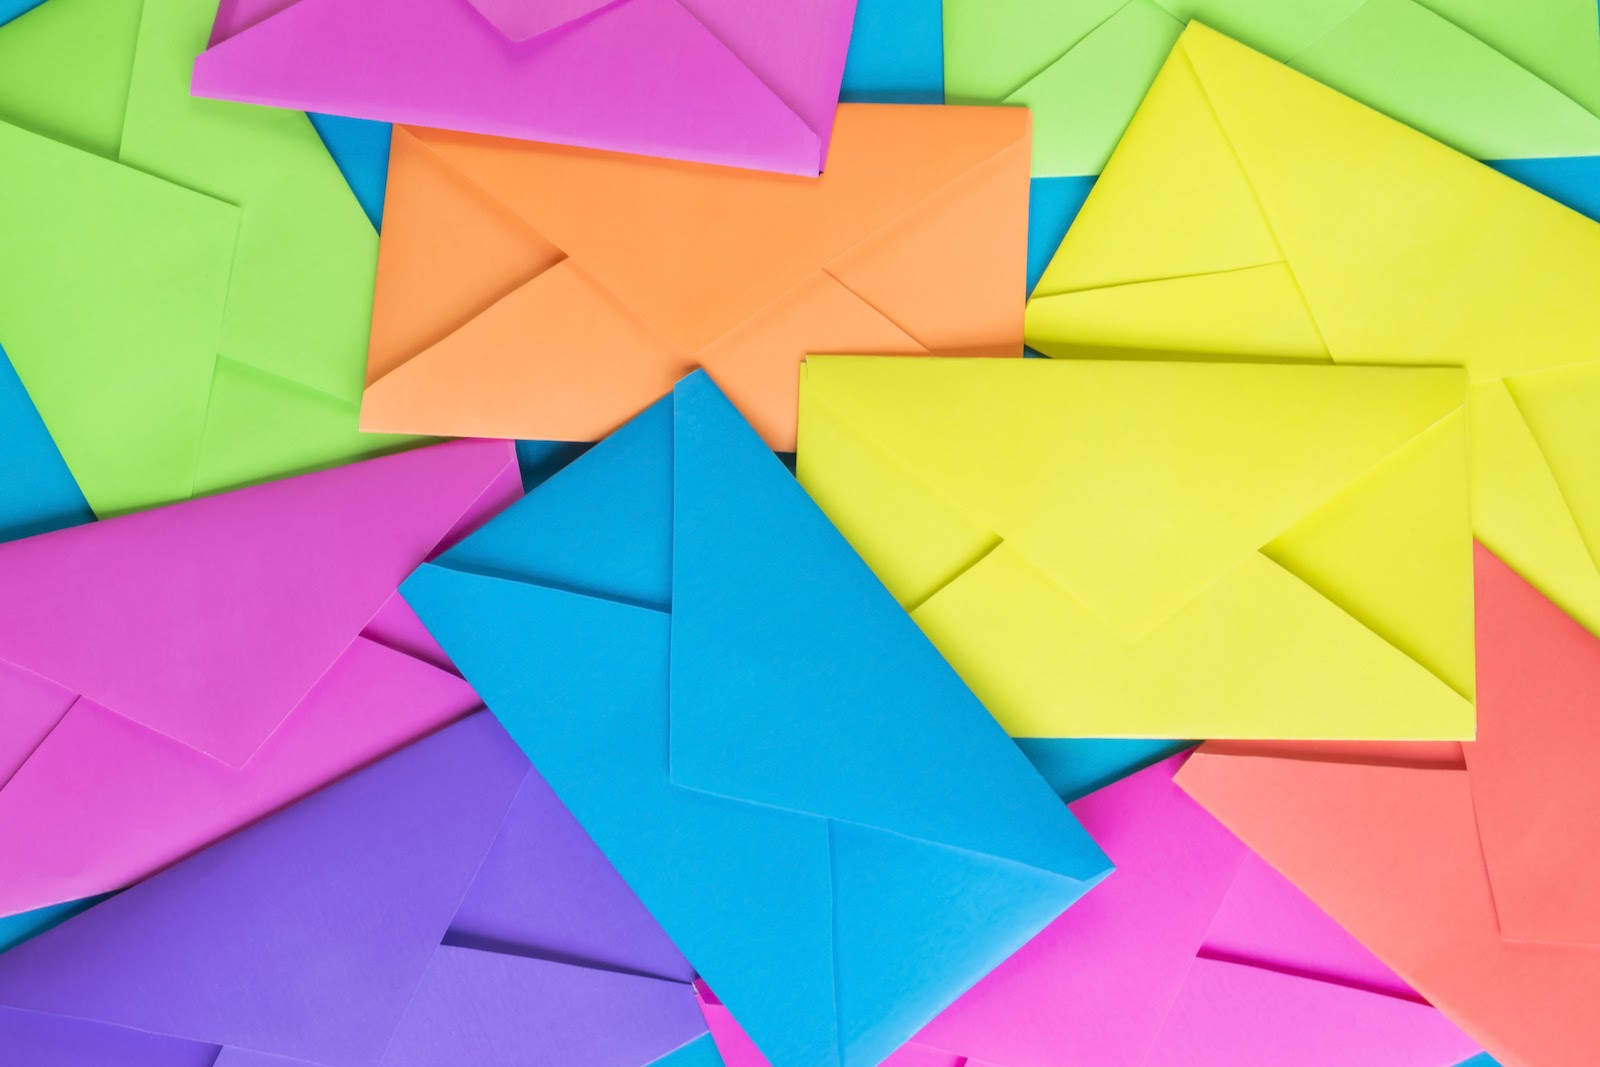 Colorful envelopes represent email for event marketing